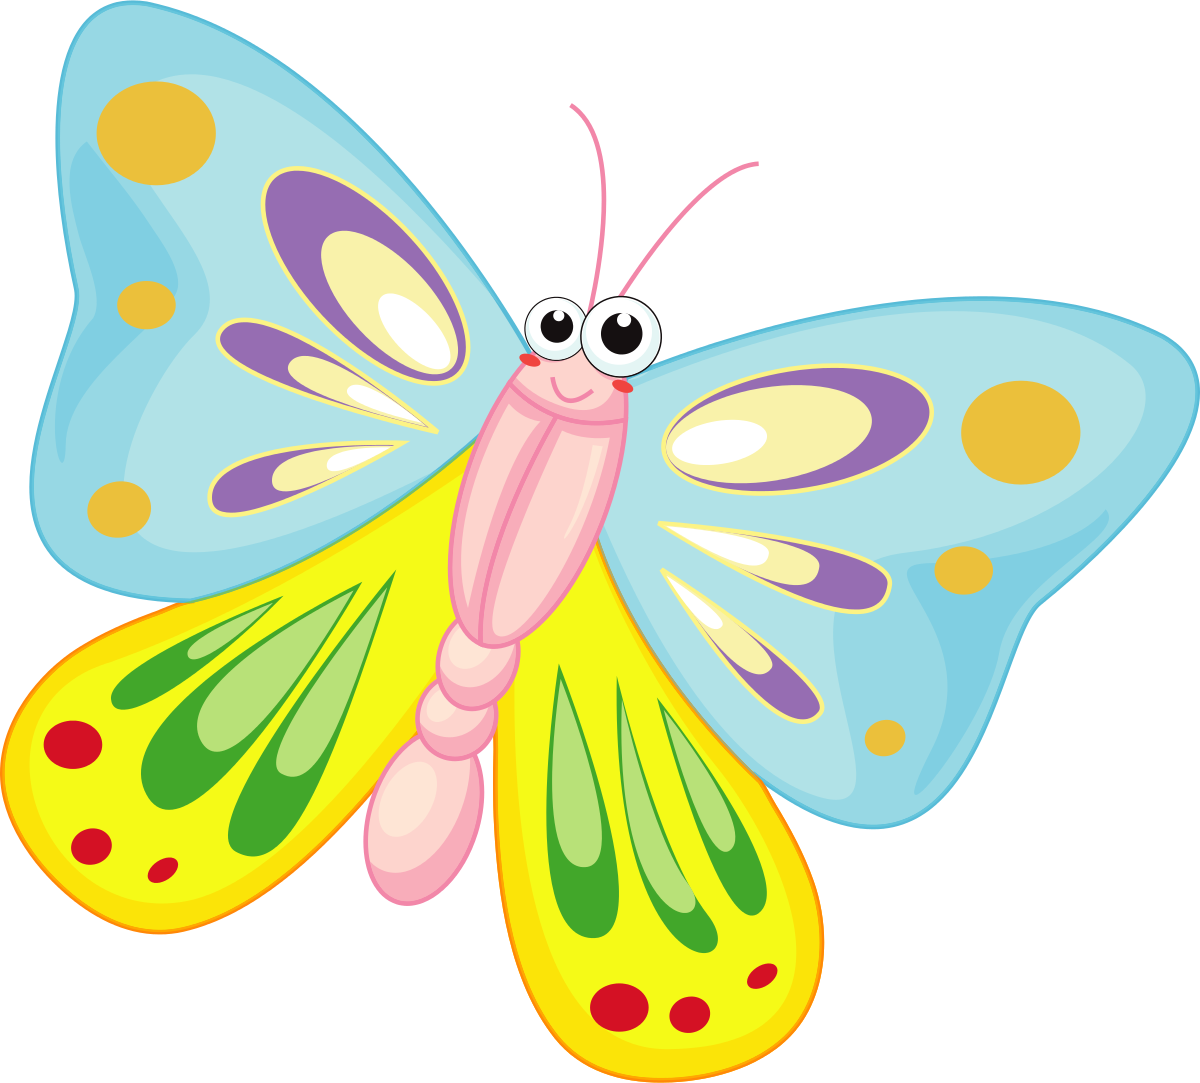 Clip art images kelebek. Insect clipart colorful flying butterfly